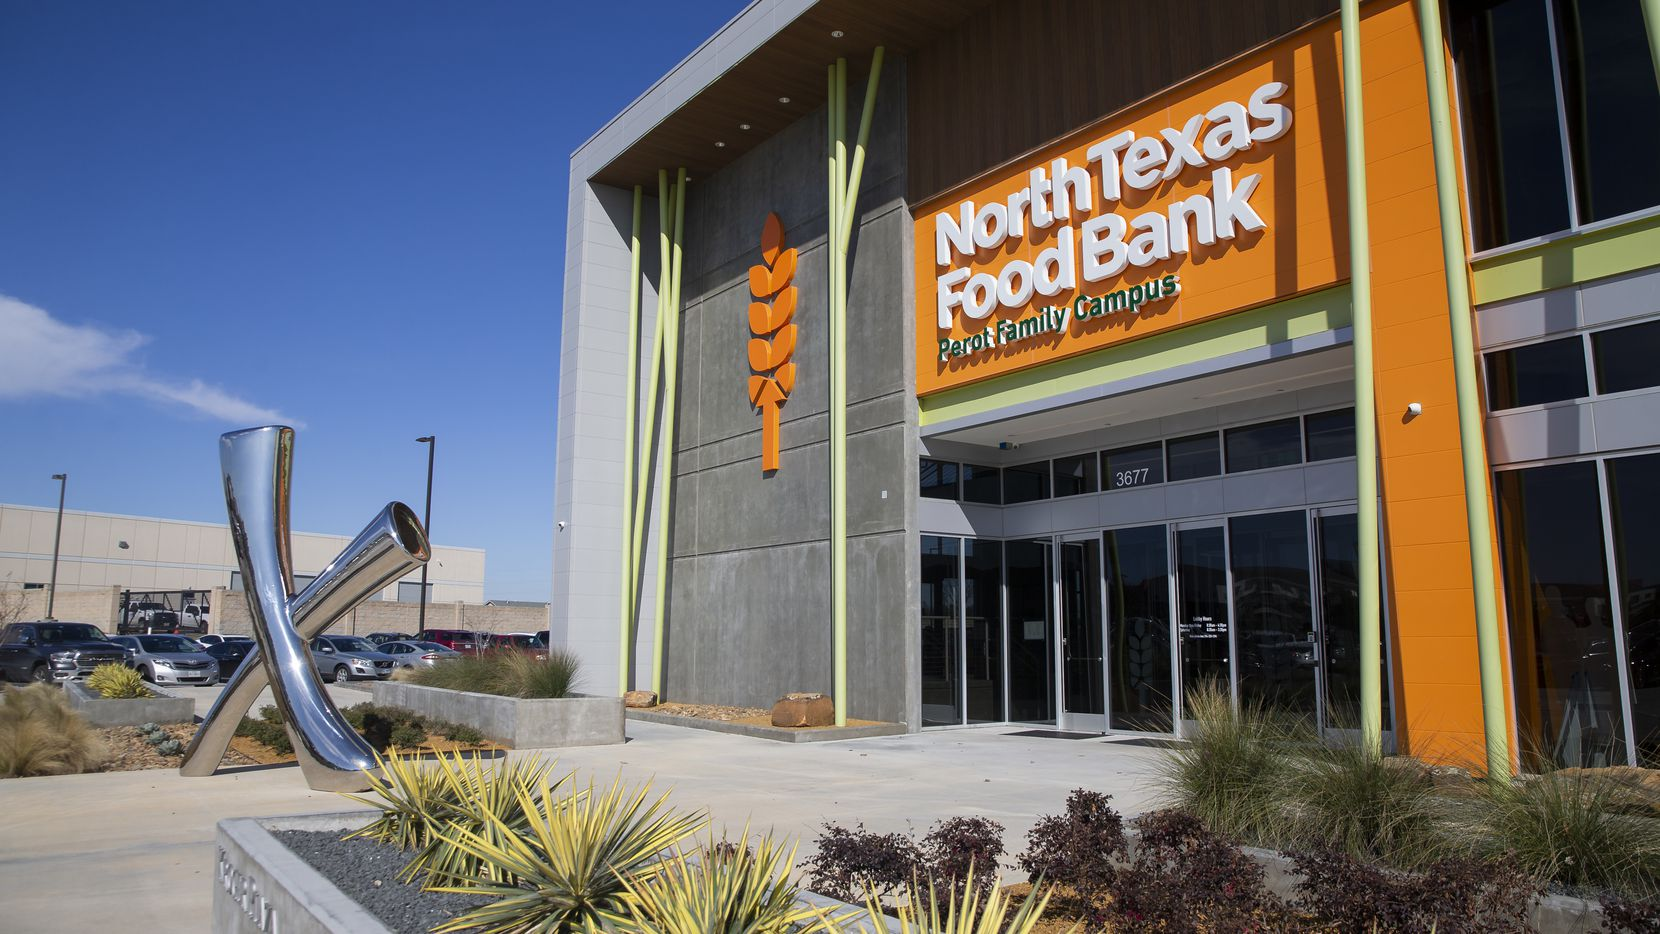 The North Texas Food Bank remains fully operational and is following sanitary and disinfecting guidelines as recommended by the Centers for Disease and Control Prevention, officials say.